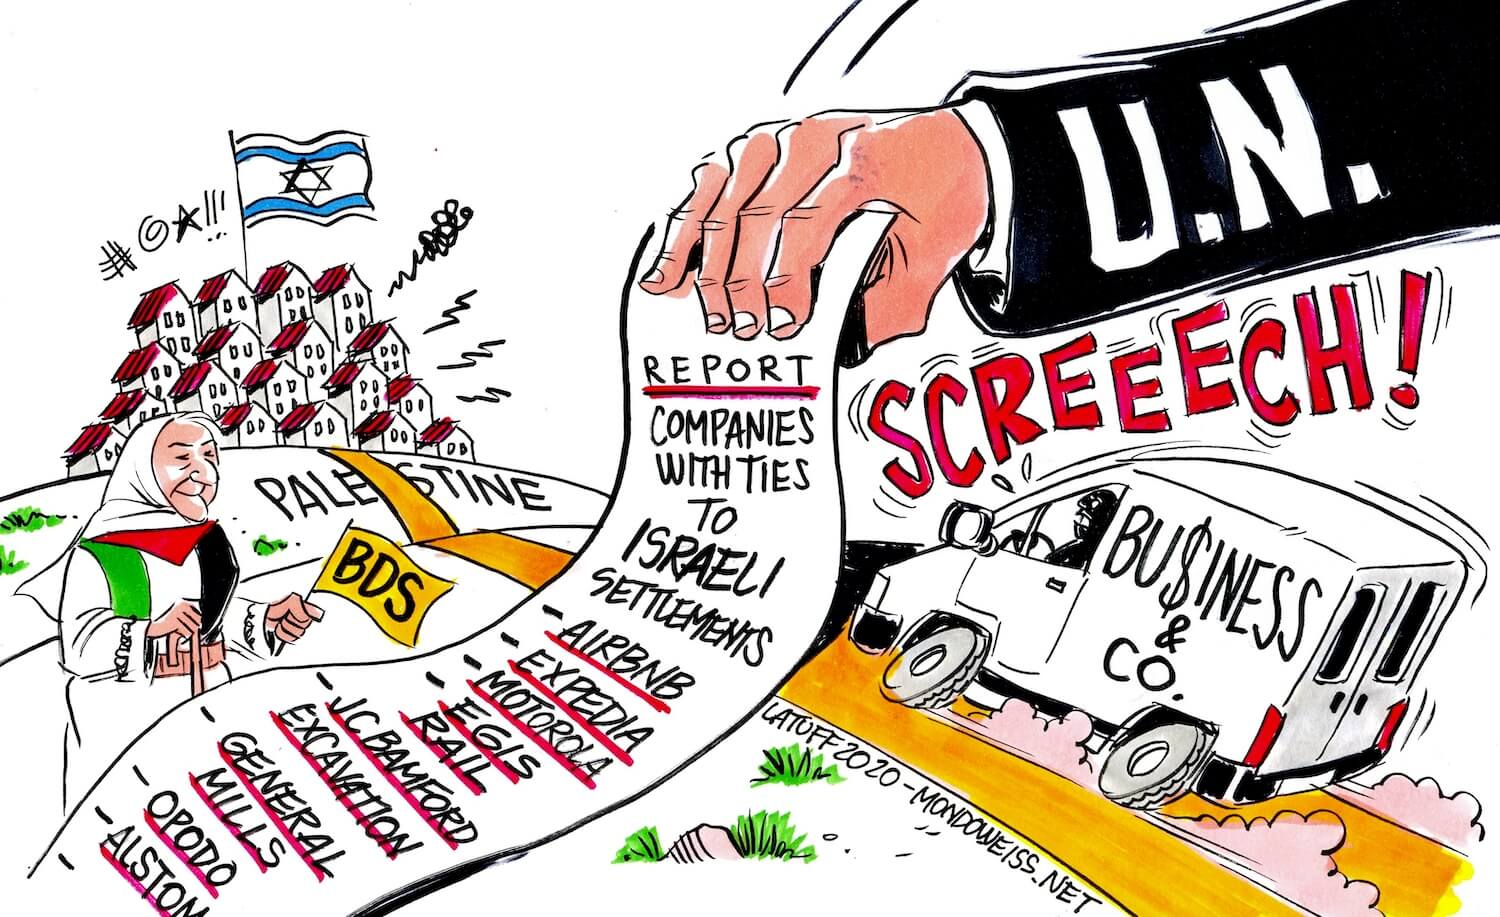 UN human rights report on companies with ties to Israel settlements